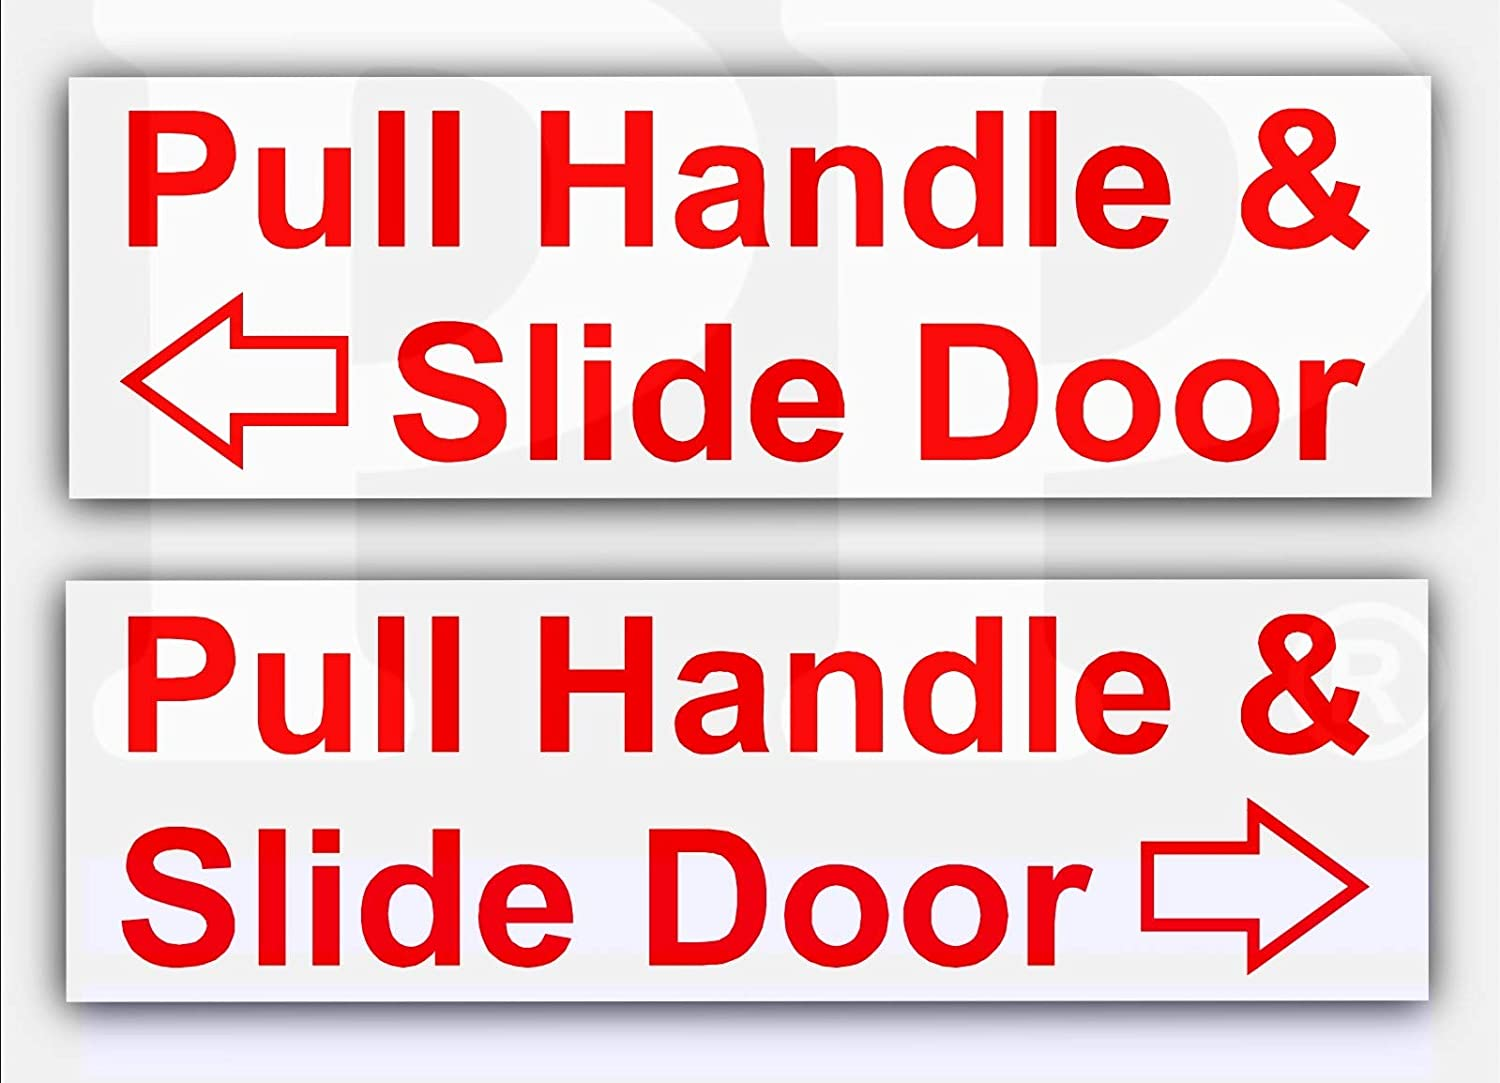 Platinum Place 2 x Pull Handle and Slide Door to Open-Set of 2-Red On White Stickers-Left Right Arrows-Hackney Mini Cab,Taxi Minicab Safety Signs